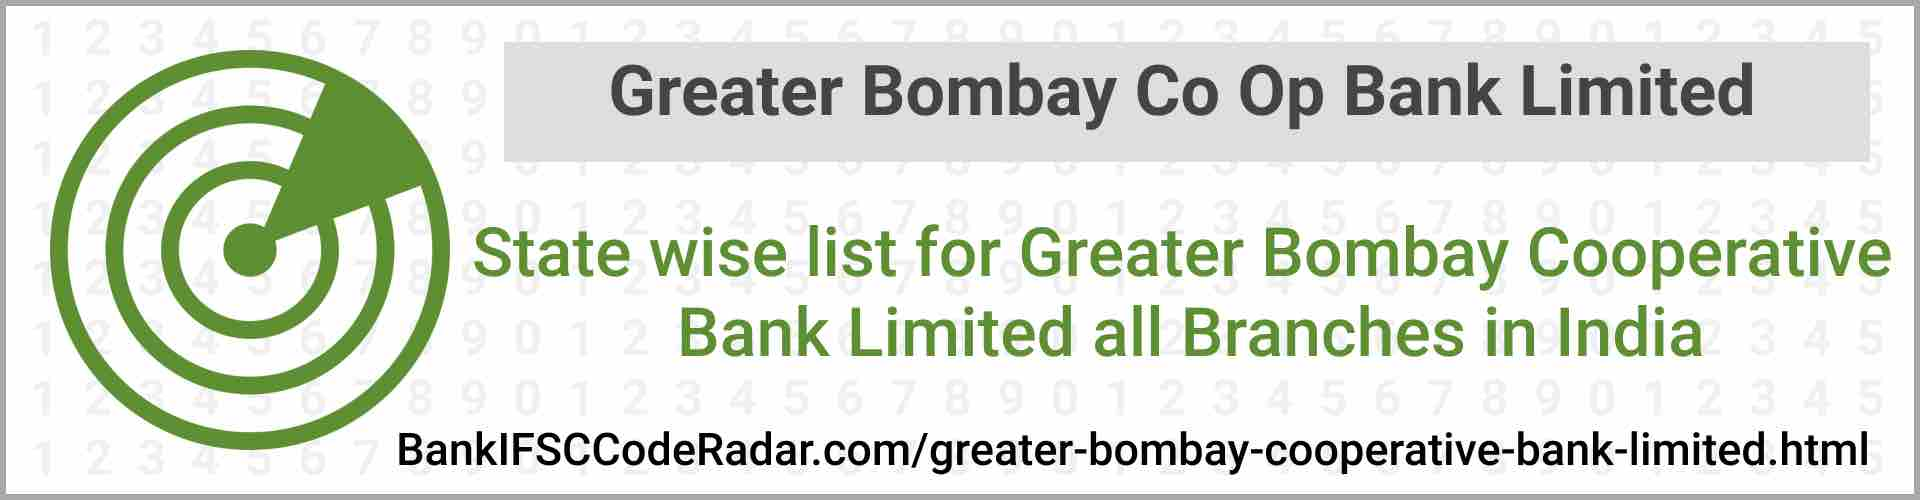 Greater Bombay Cooperative Bank Limited All Branches India